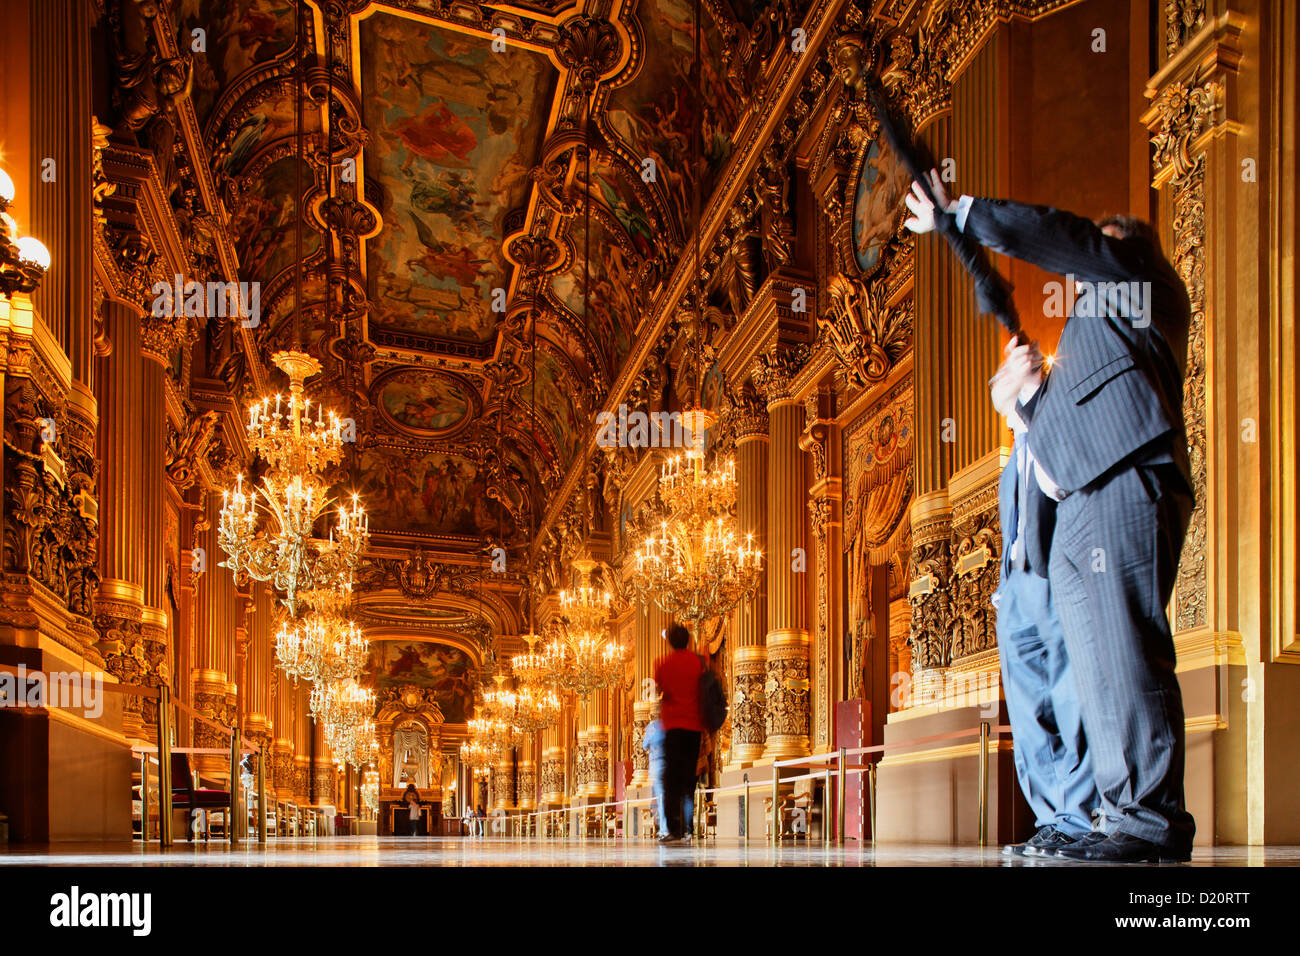 People at the Grand Foyer of the Opera Garnier, Paris, France, Europe - Stock Image